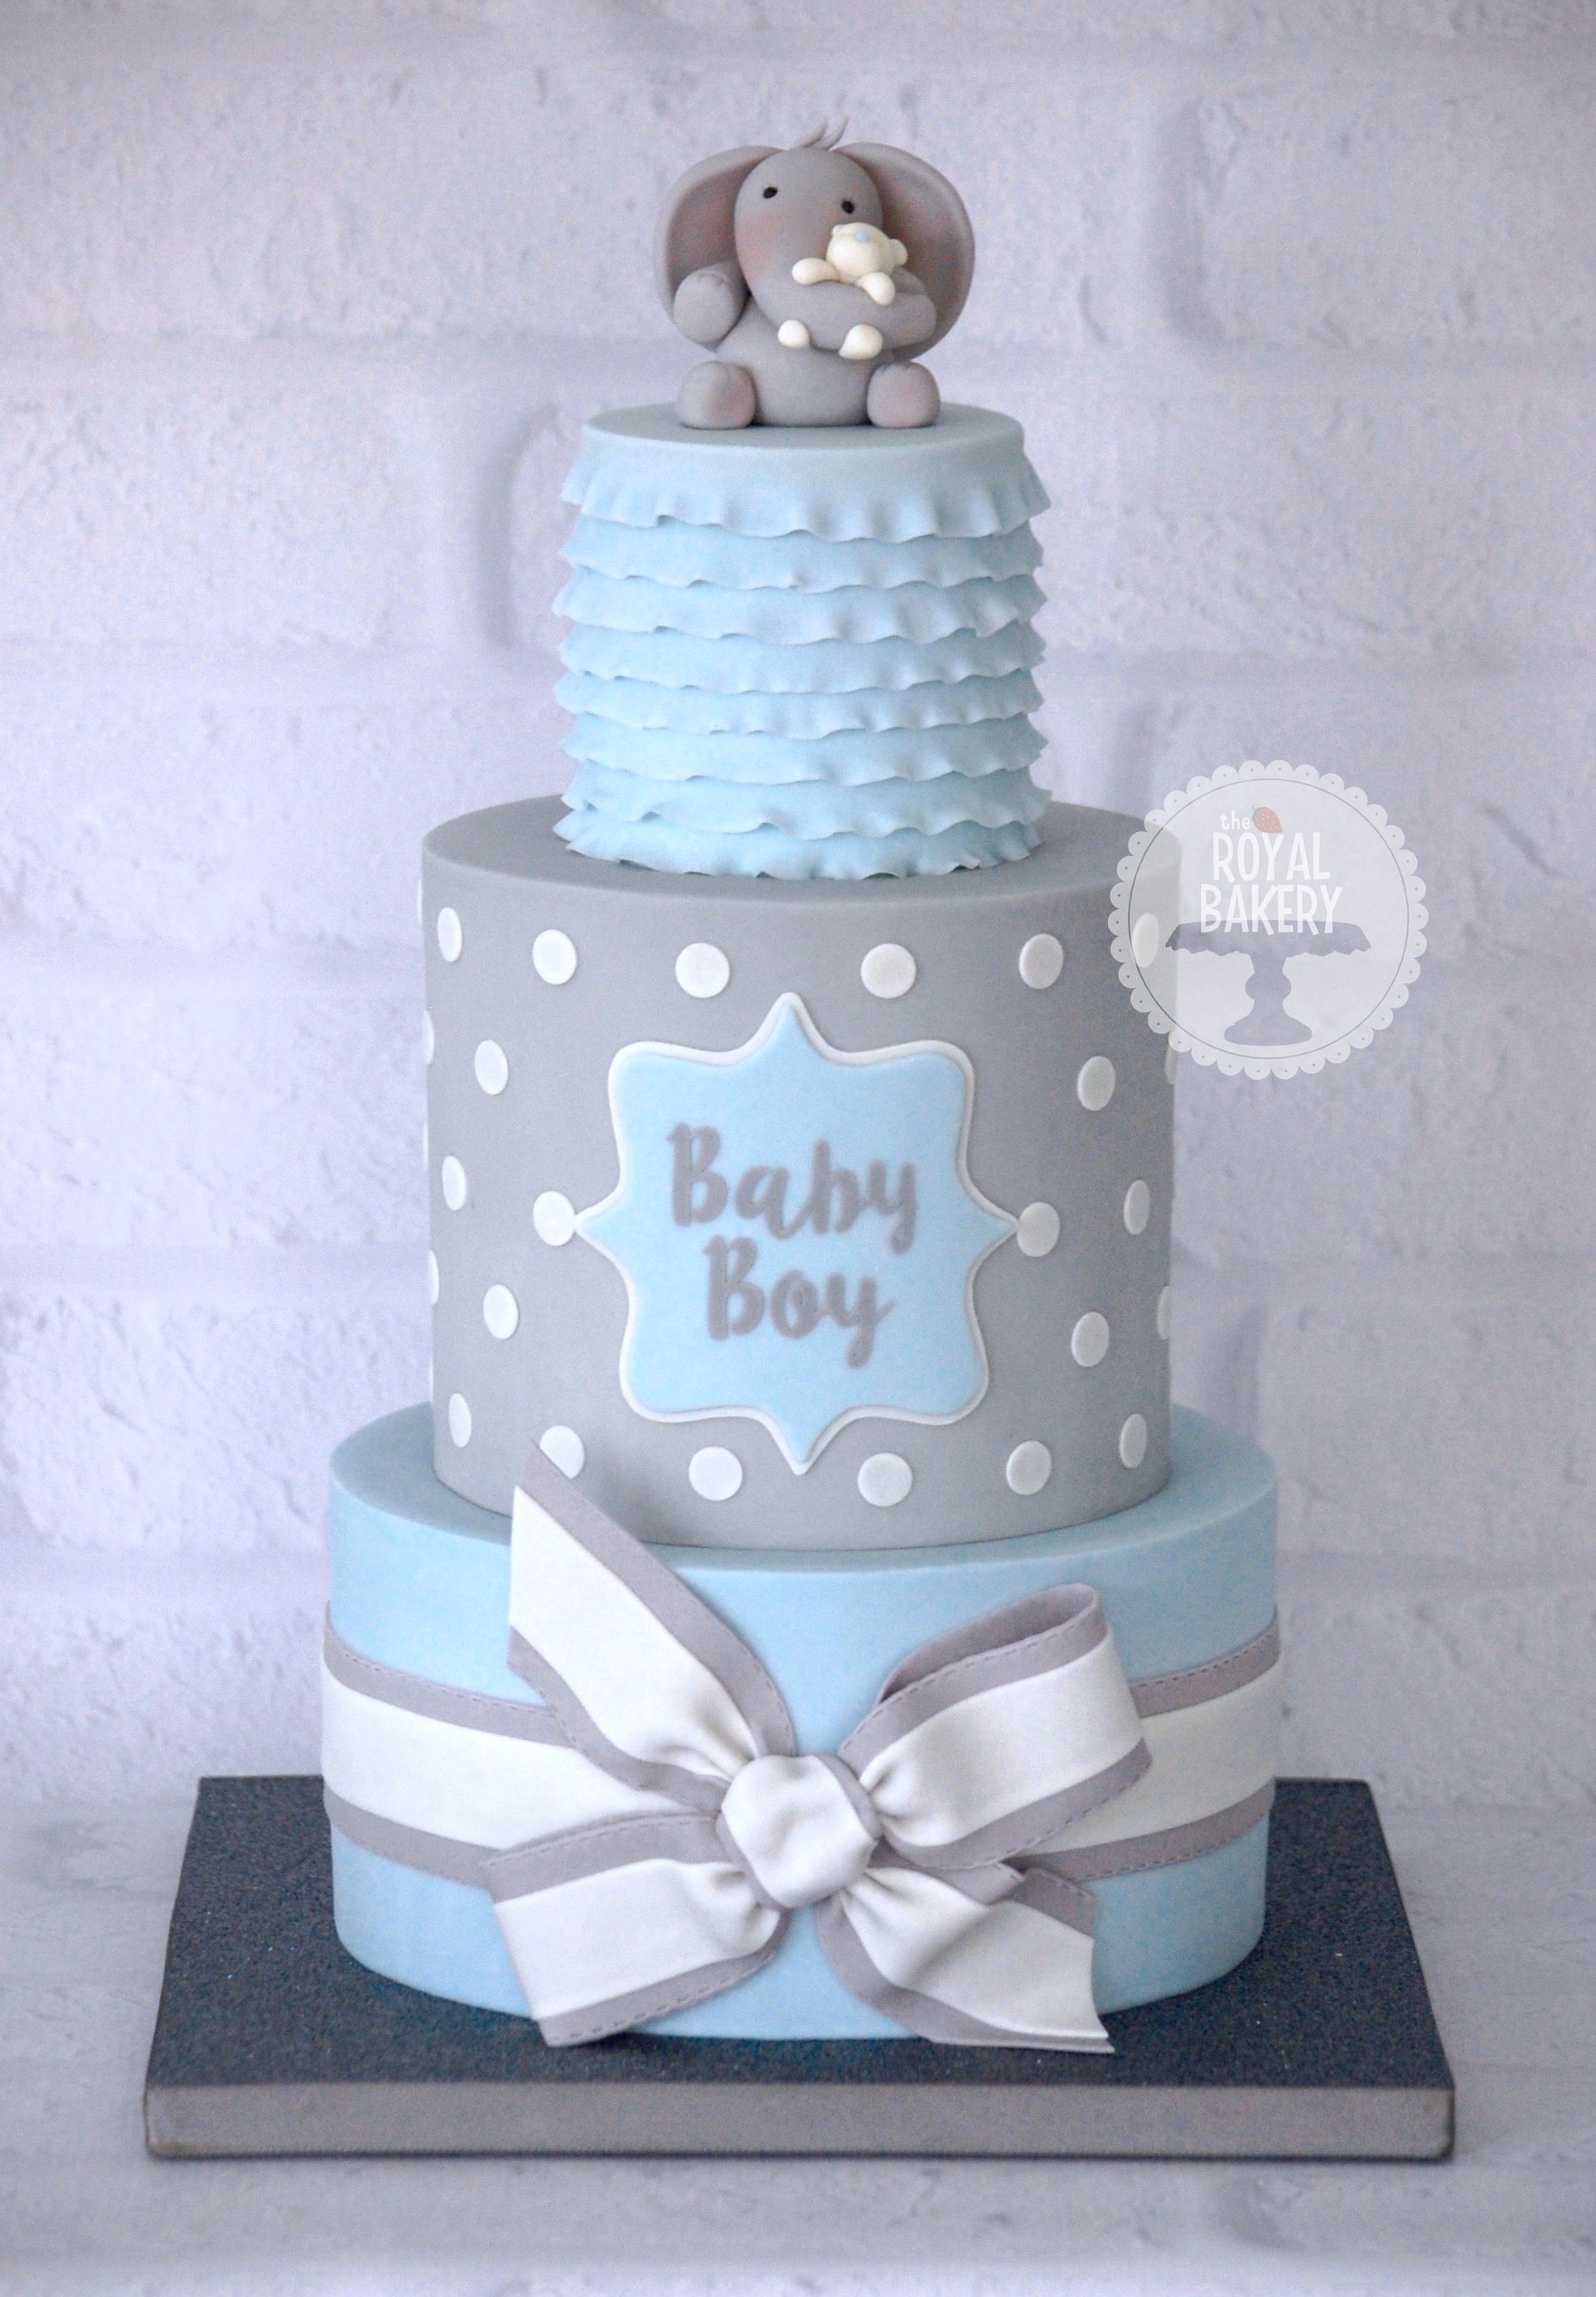 A Baby Boy Blue And Grey Baby Shower Cake Based On A Design By